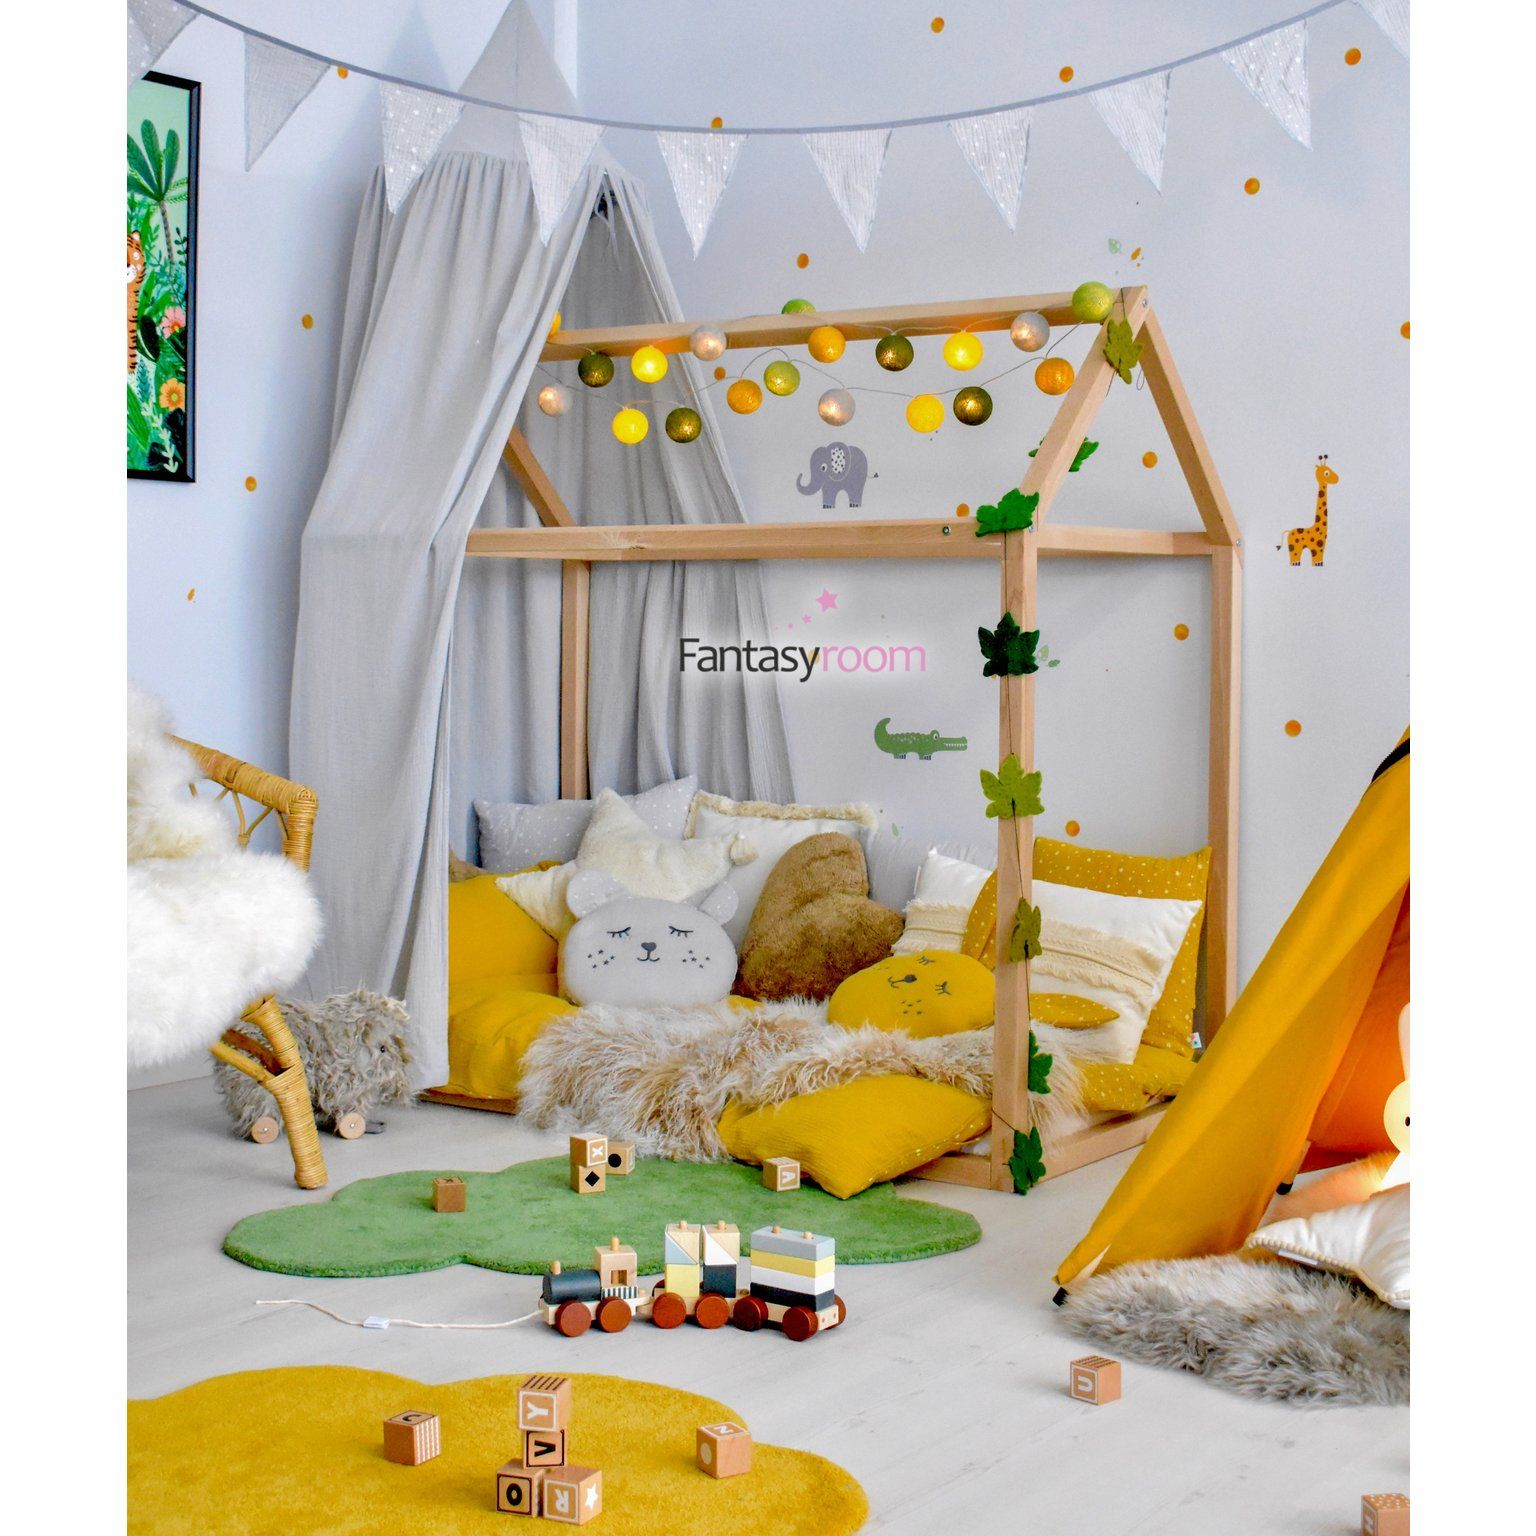 Photo of Childhome Hausbett f�r 70x140cm Matratze Buche massiv